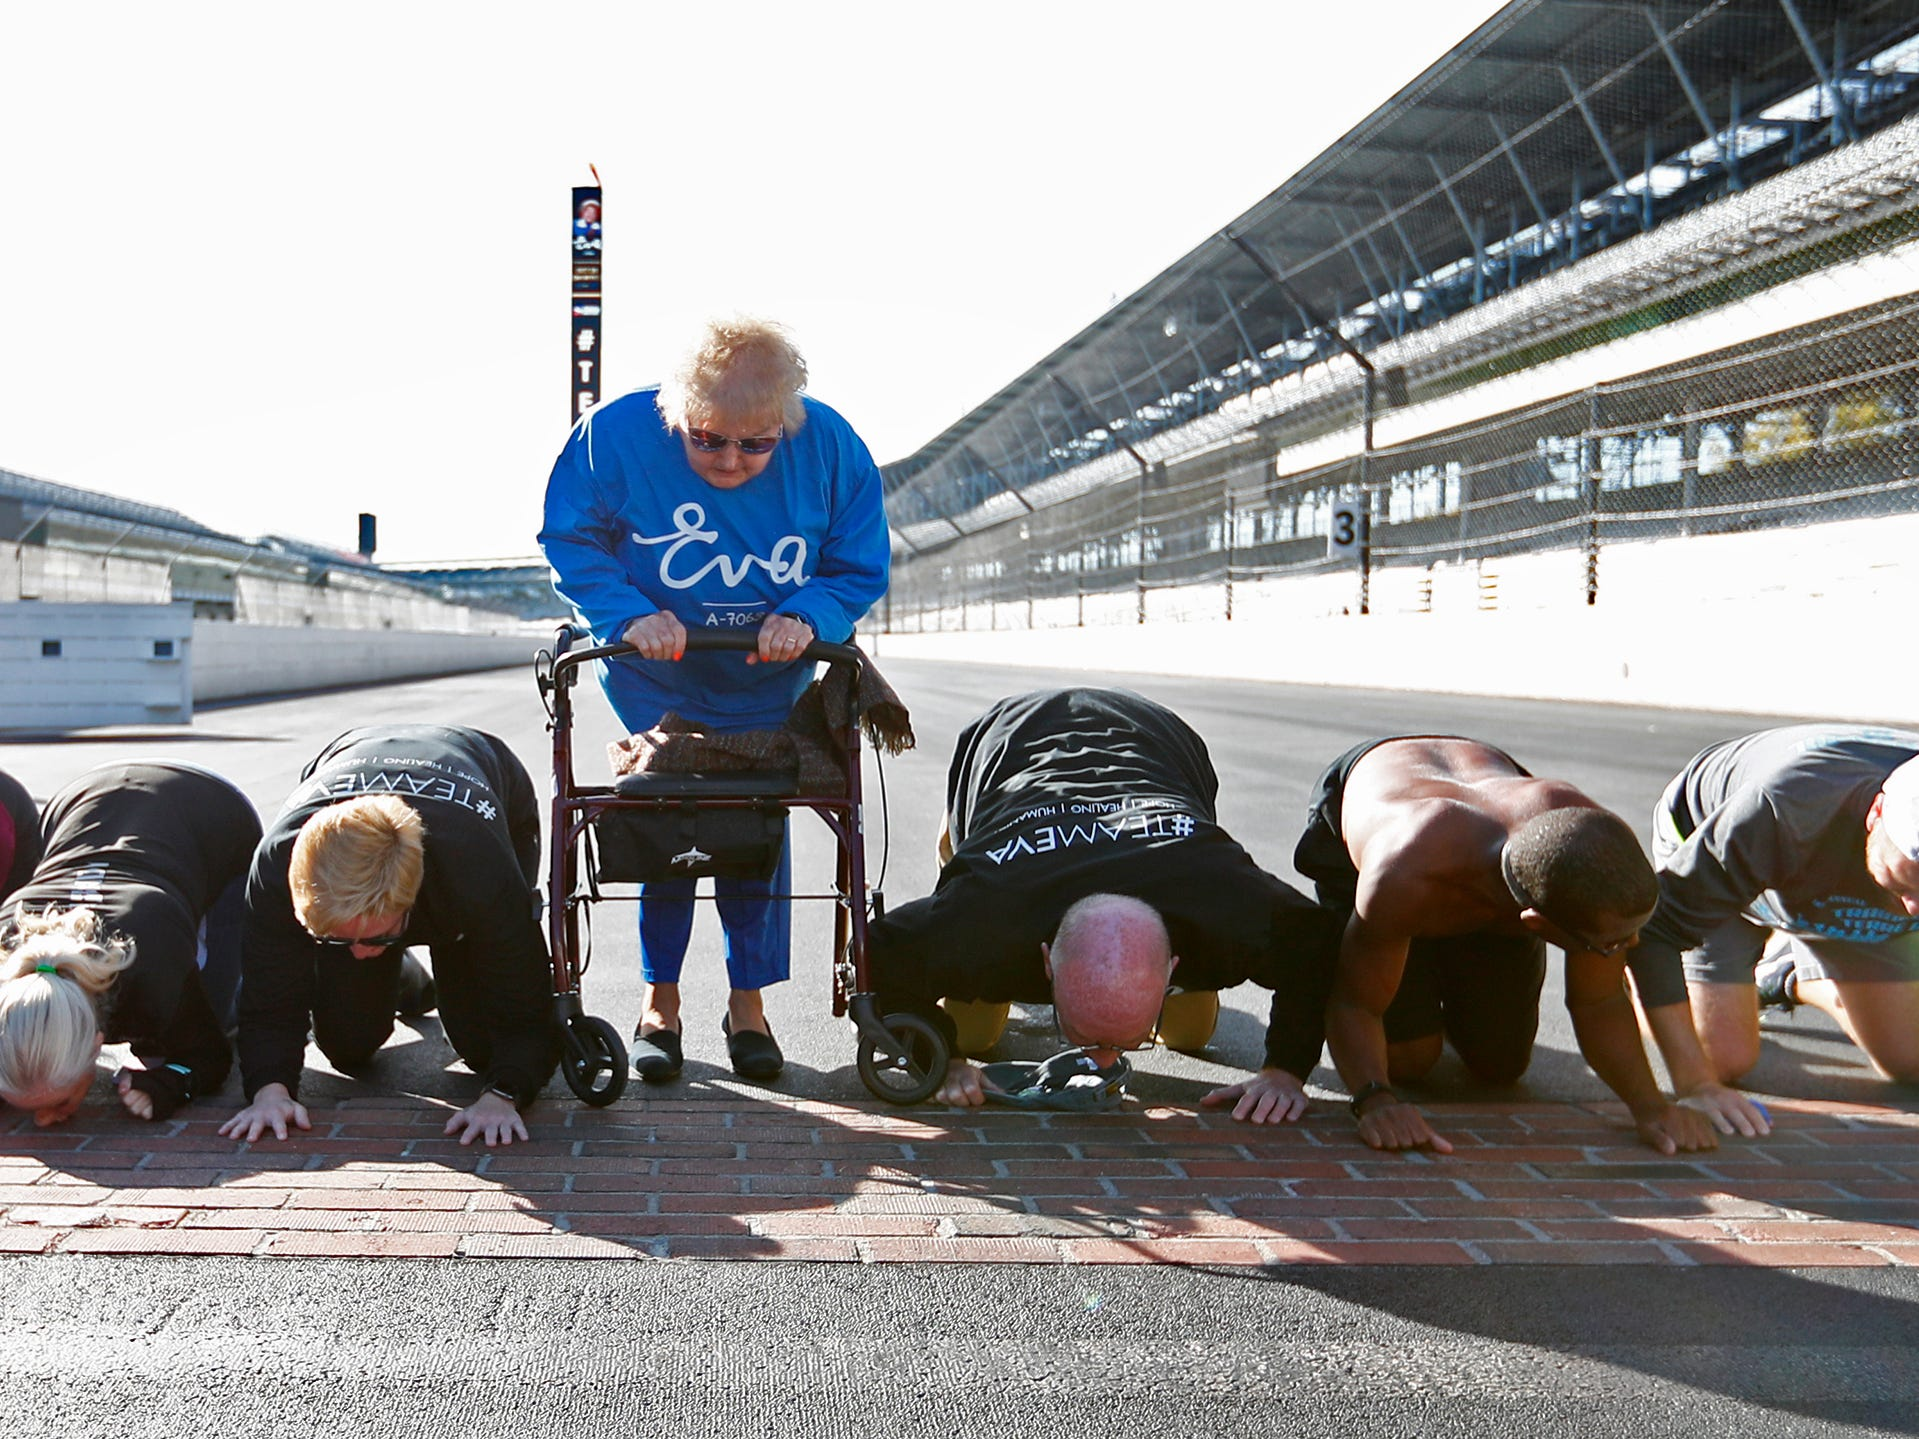 Holocaust survivor Eva Kor, center, joins others at the Indianapolis Motor Speedway Yard of Bricks for photos, Wednesday, Oct. 24, 2018, during the pace-setting run for the 2019 OneAmerica 500 Festival Mini-Marathon.  They also kissed the bricks!  The 500 Festival will donate $1 to the CANDLES Holocaust Museum in Terre Haute for every mini-marathon participant who finishes the 2019 race in a better time than Team Eva.  Kor ran the very last of the relay race.